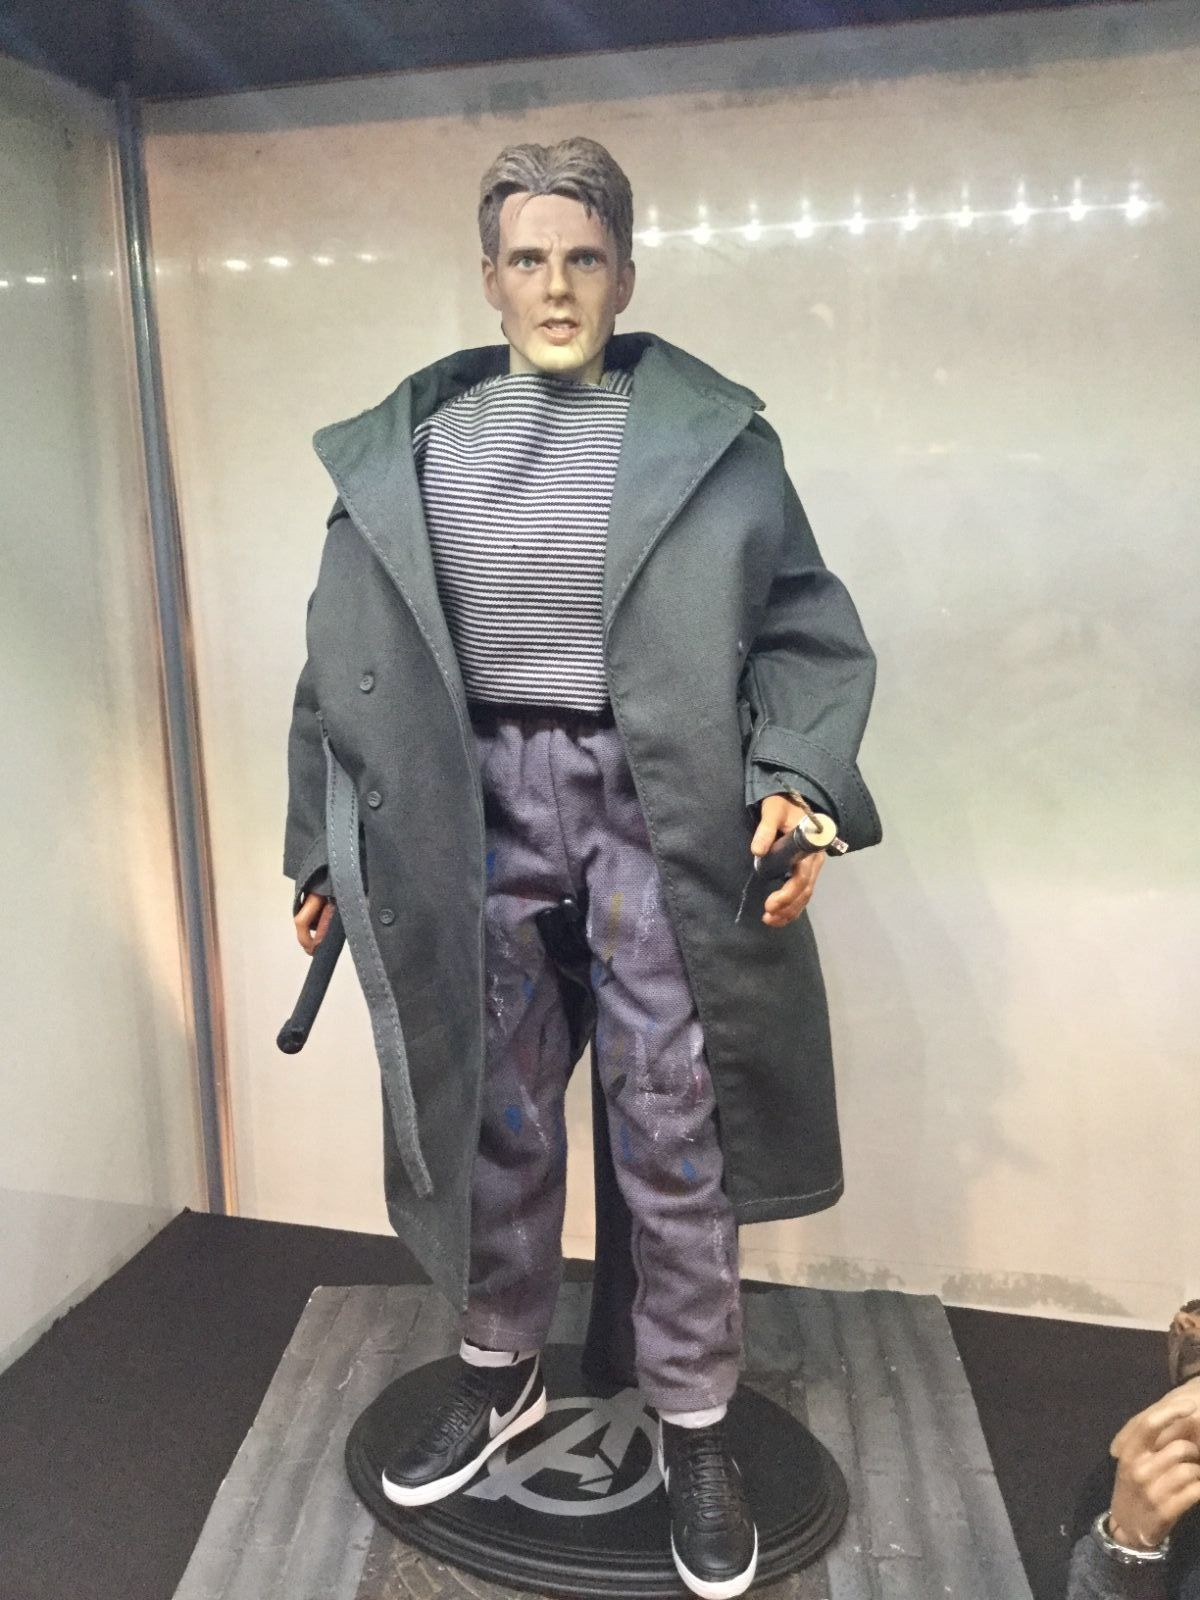 16 custom terminator kyle reeseeap great deal action 1 6 custom terminator kyle reese cheap great deal ebay thecheapjerseys Images